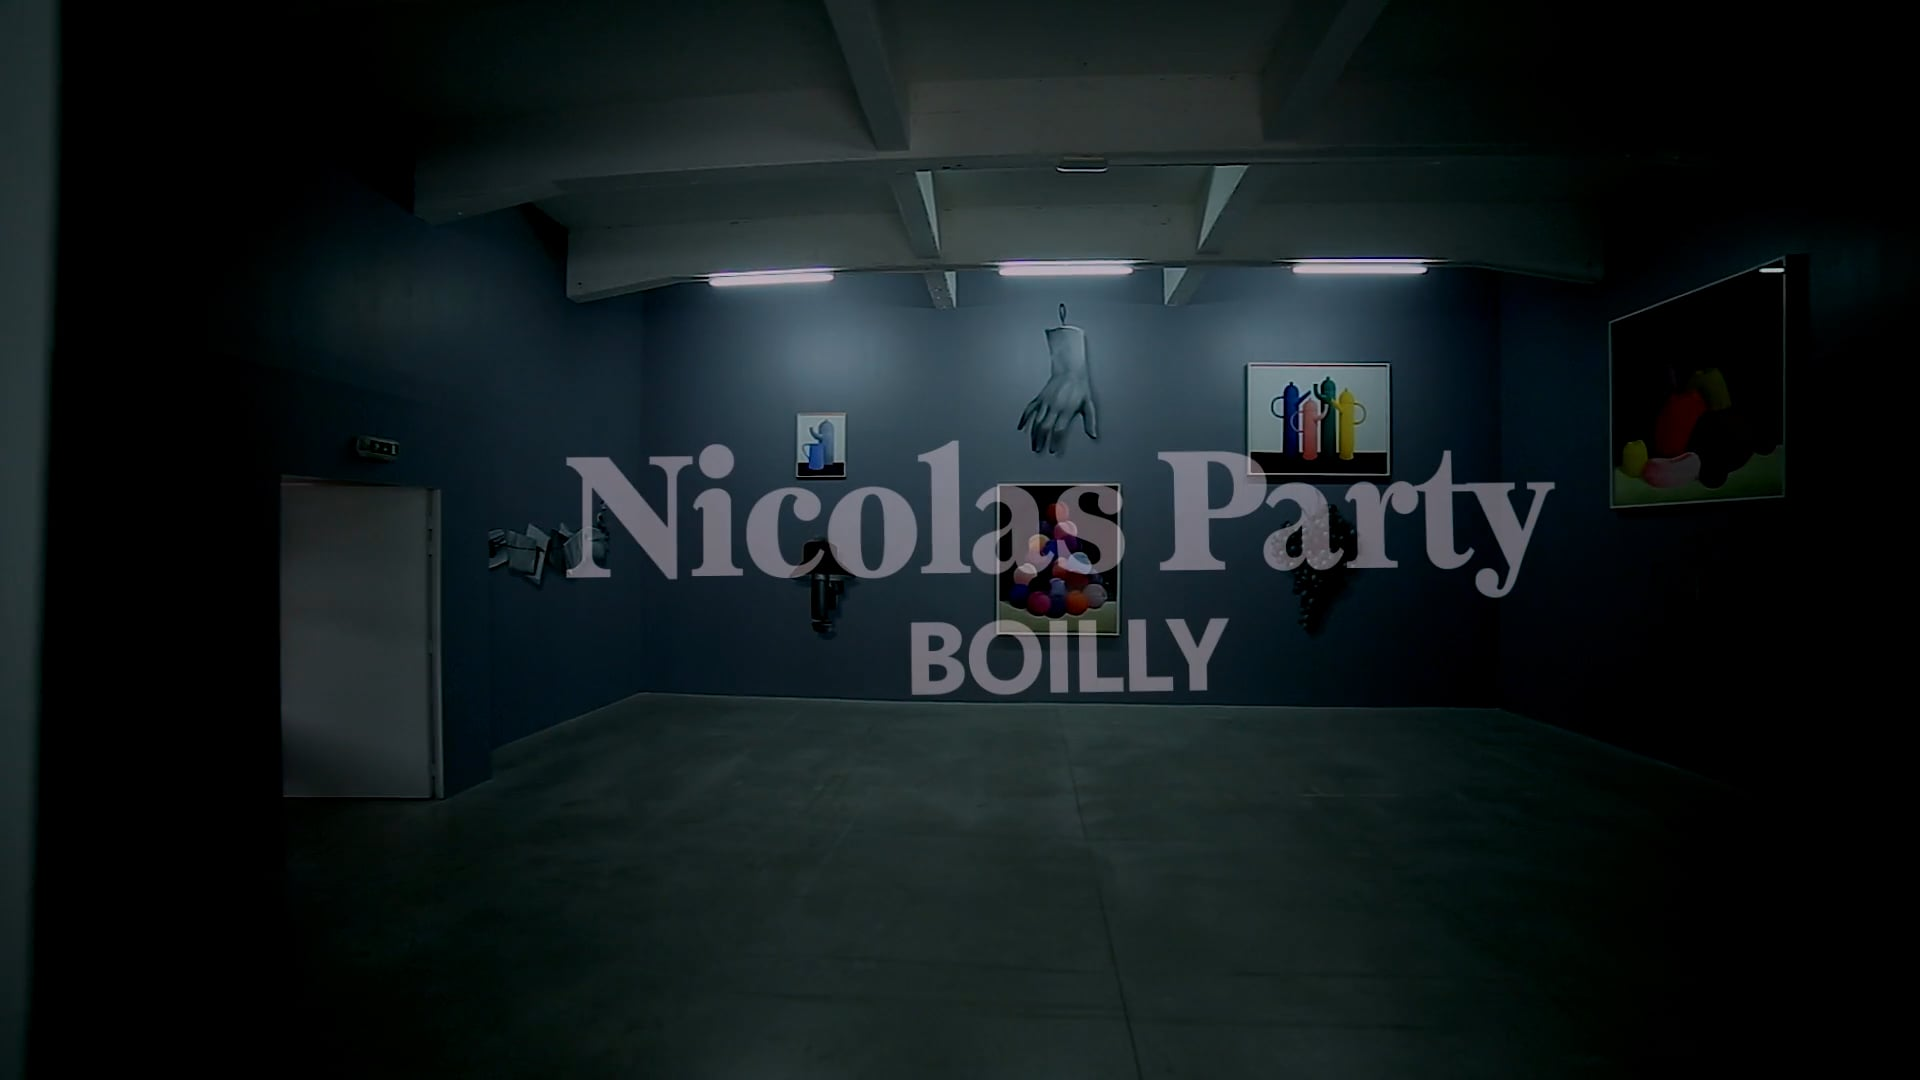 Nicolas Party / Boilly at Consortium Museum